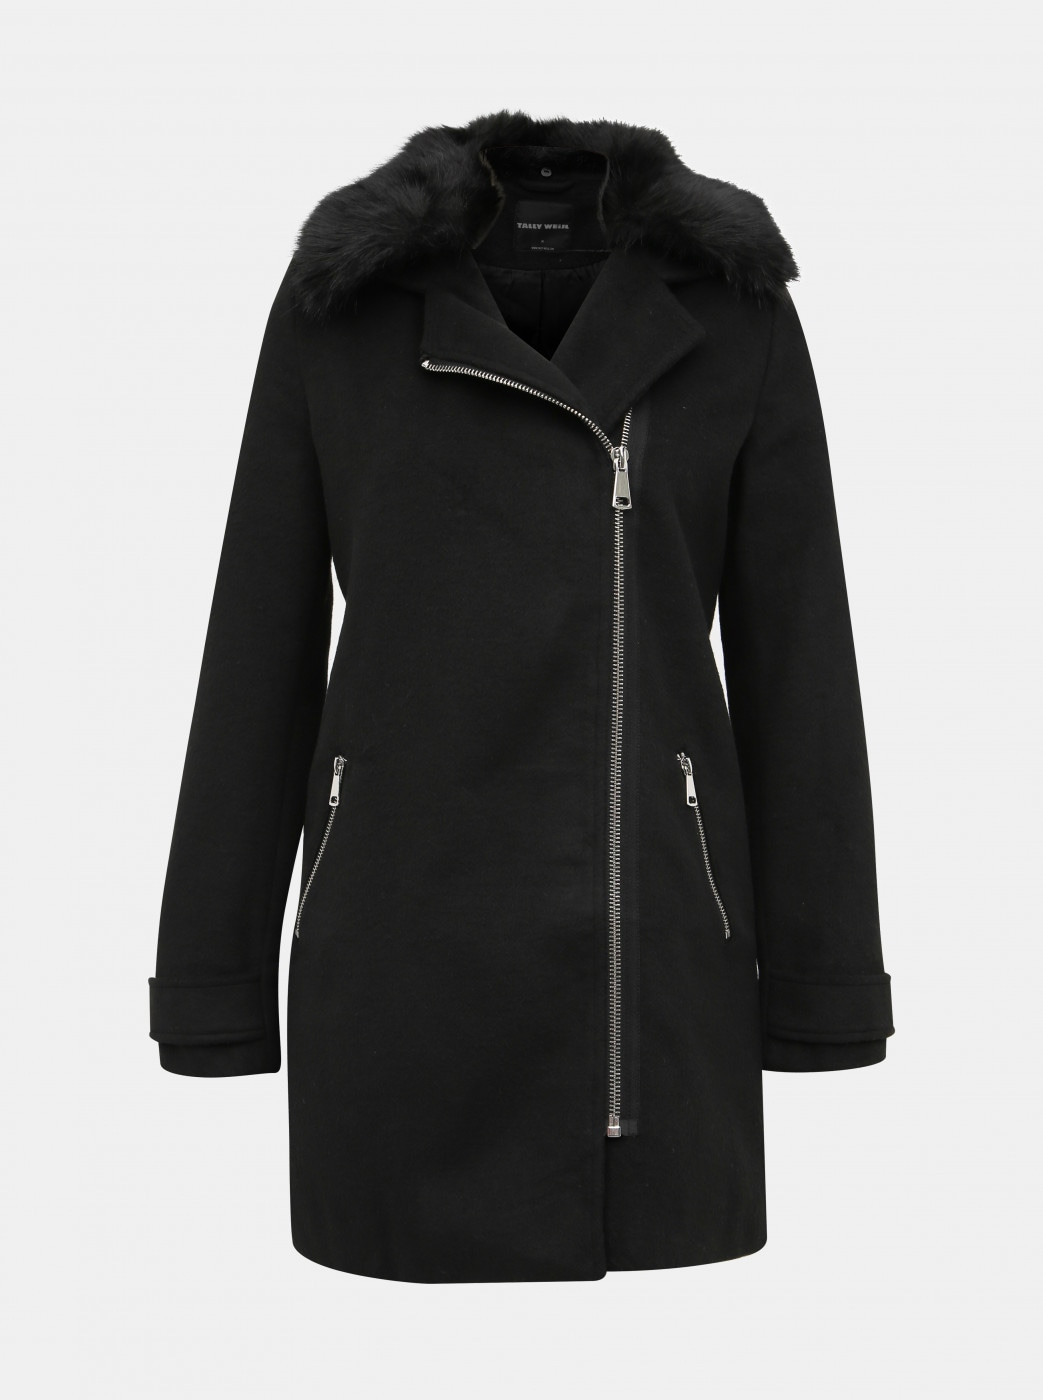 Tally WEiJL Black Coat